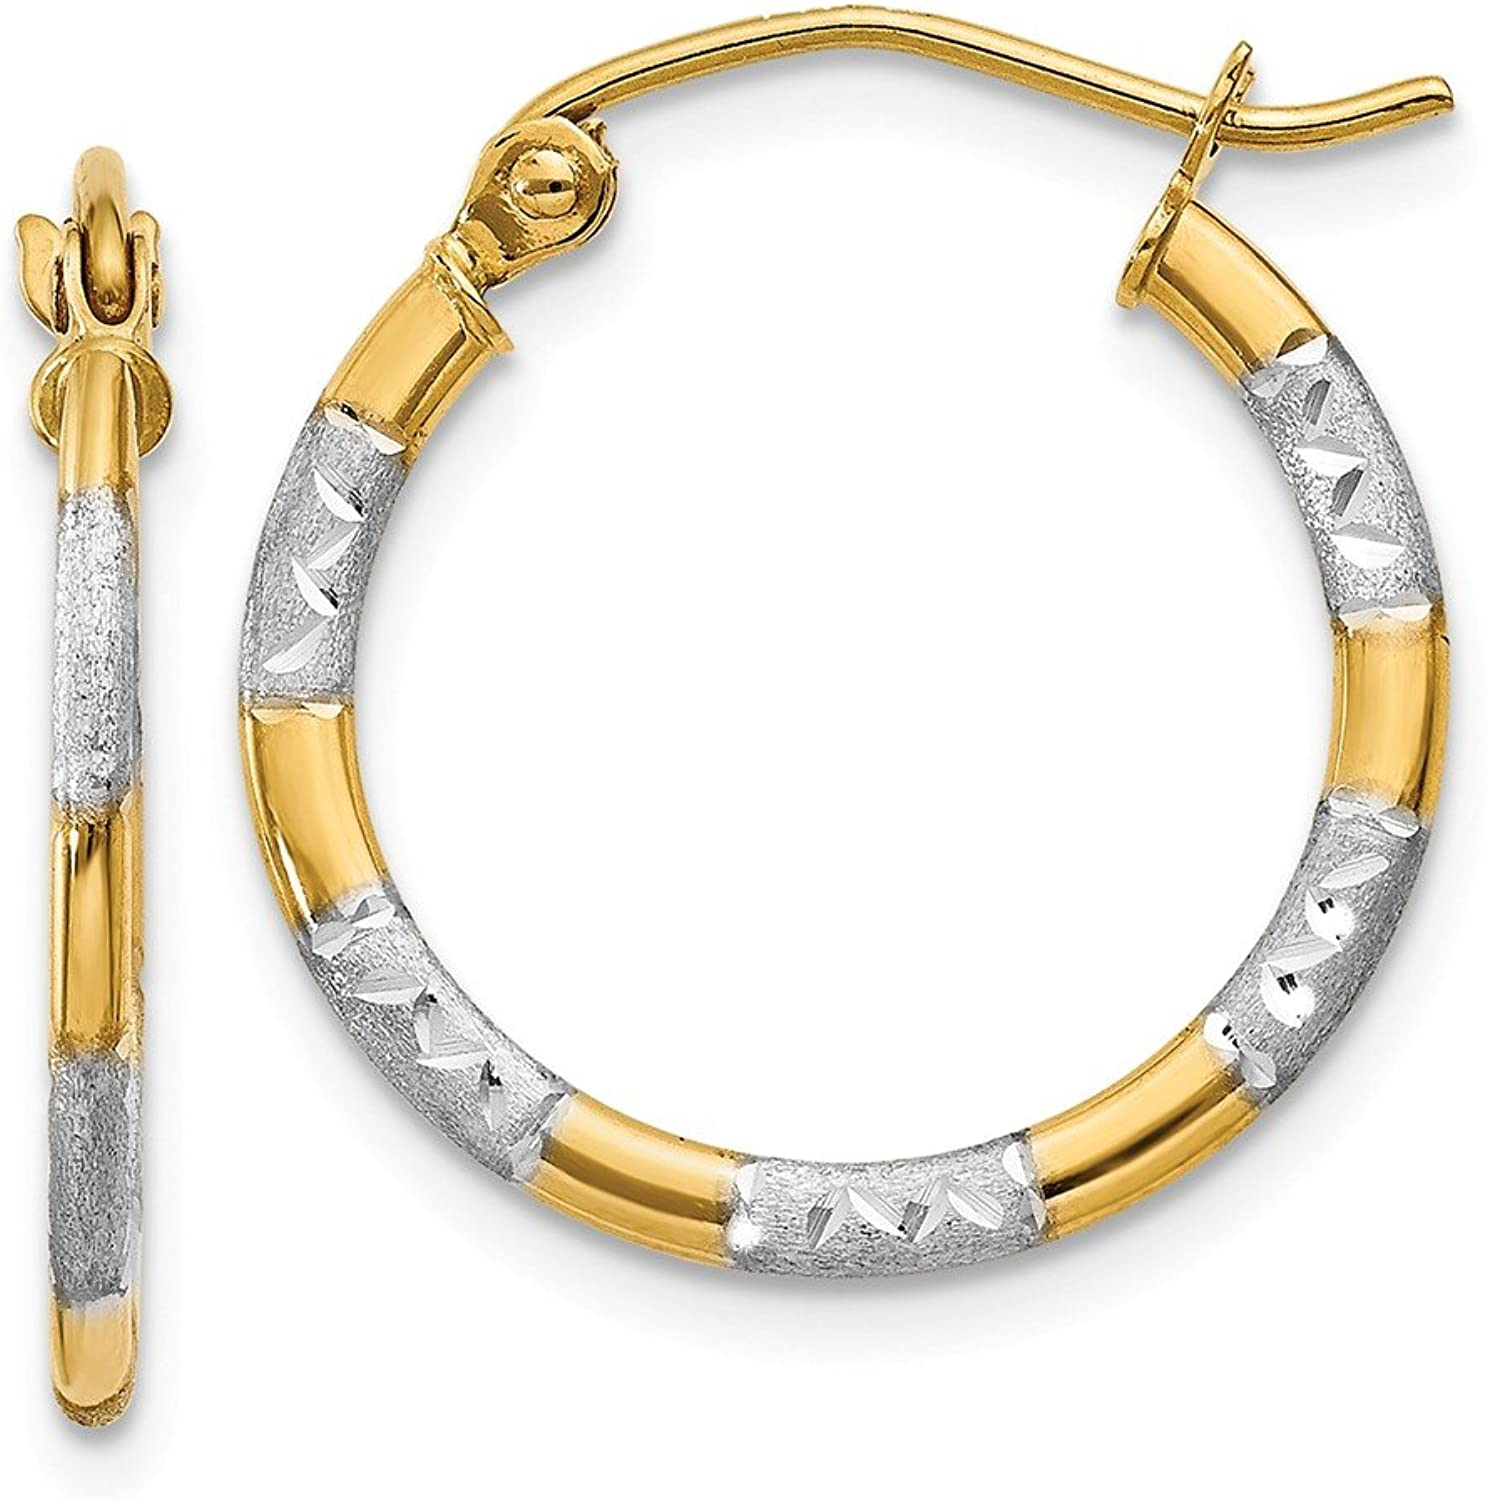 Beautiful rhodium plated gold and silver 14K rhodiumplatedgoldandsilver 14K & Rhodium Diamond Cut Hoop Earrings